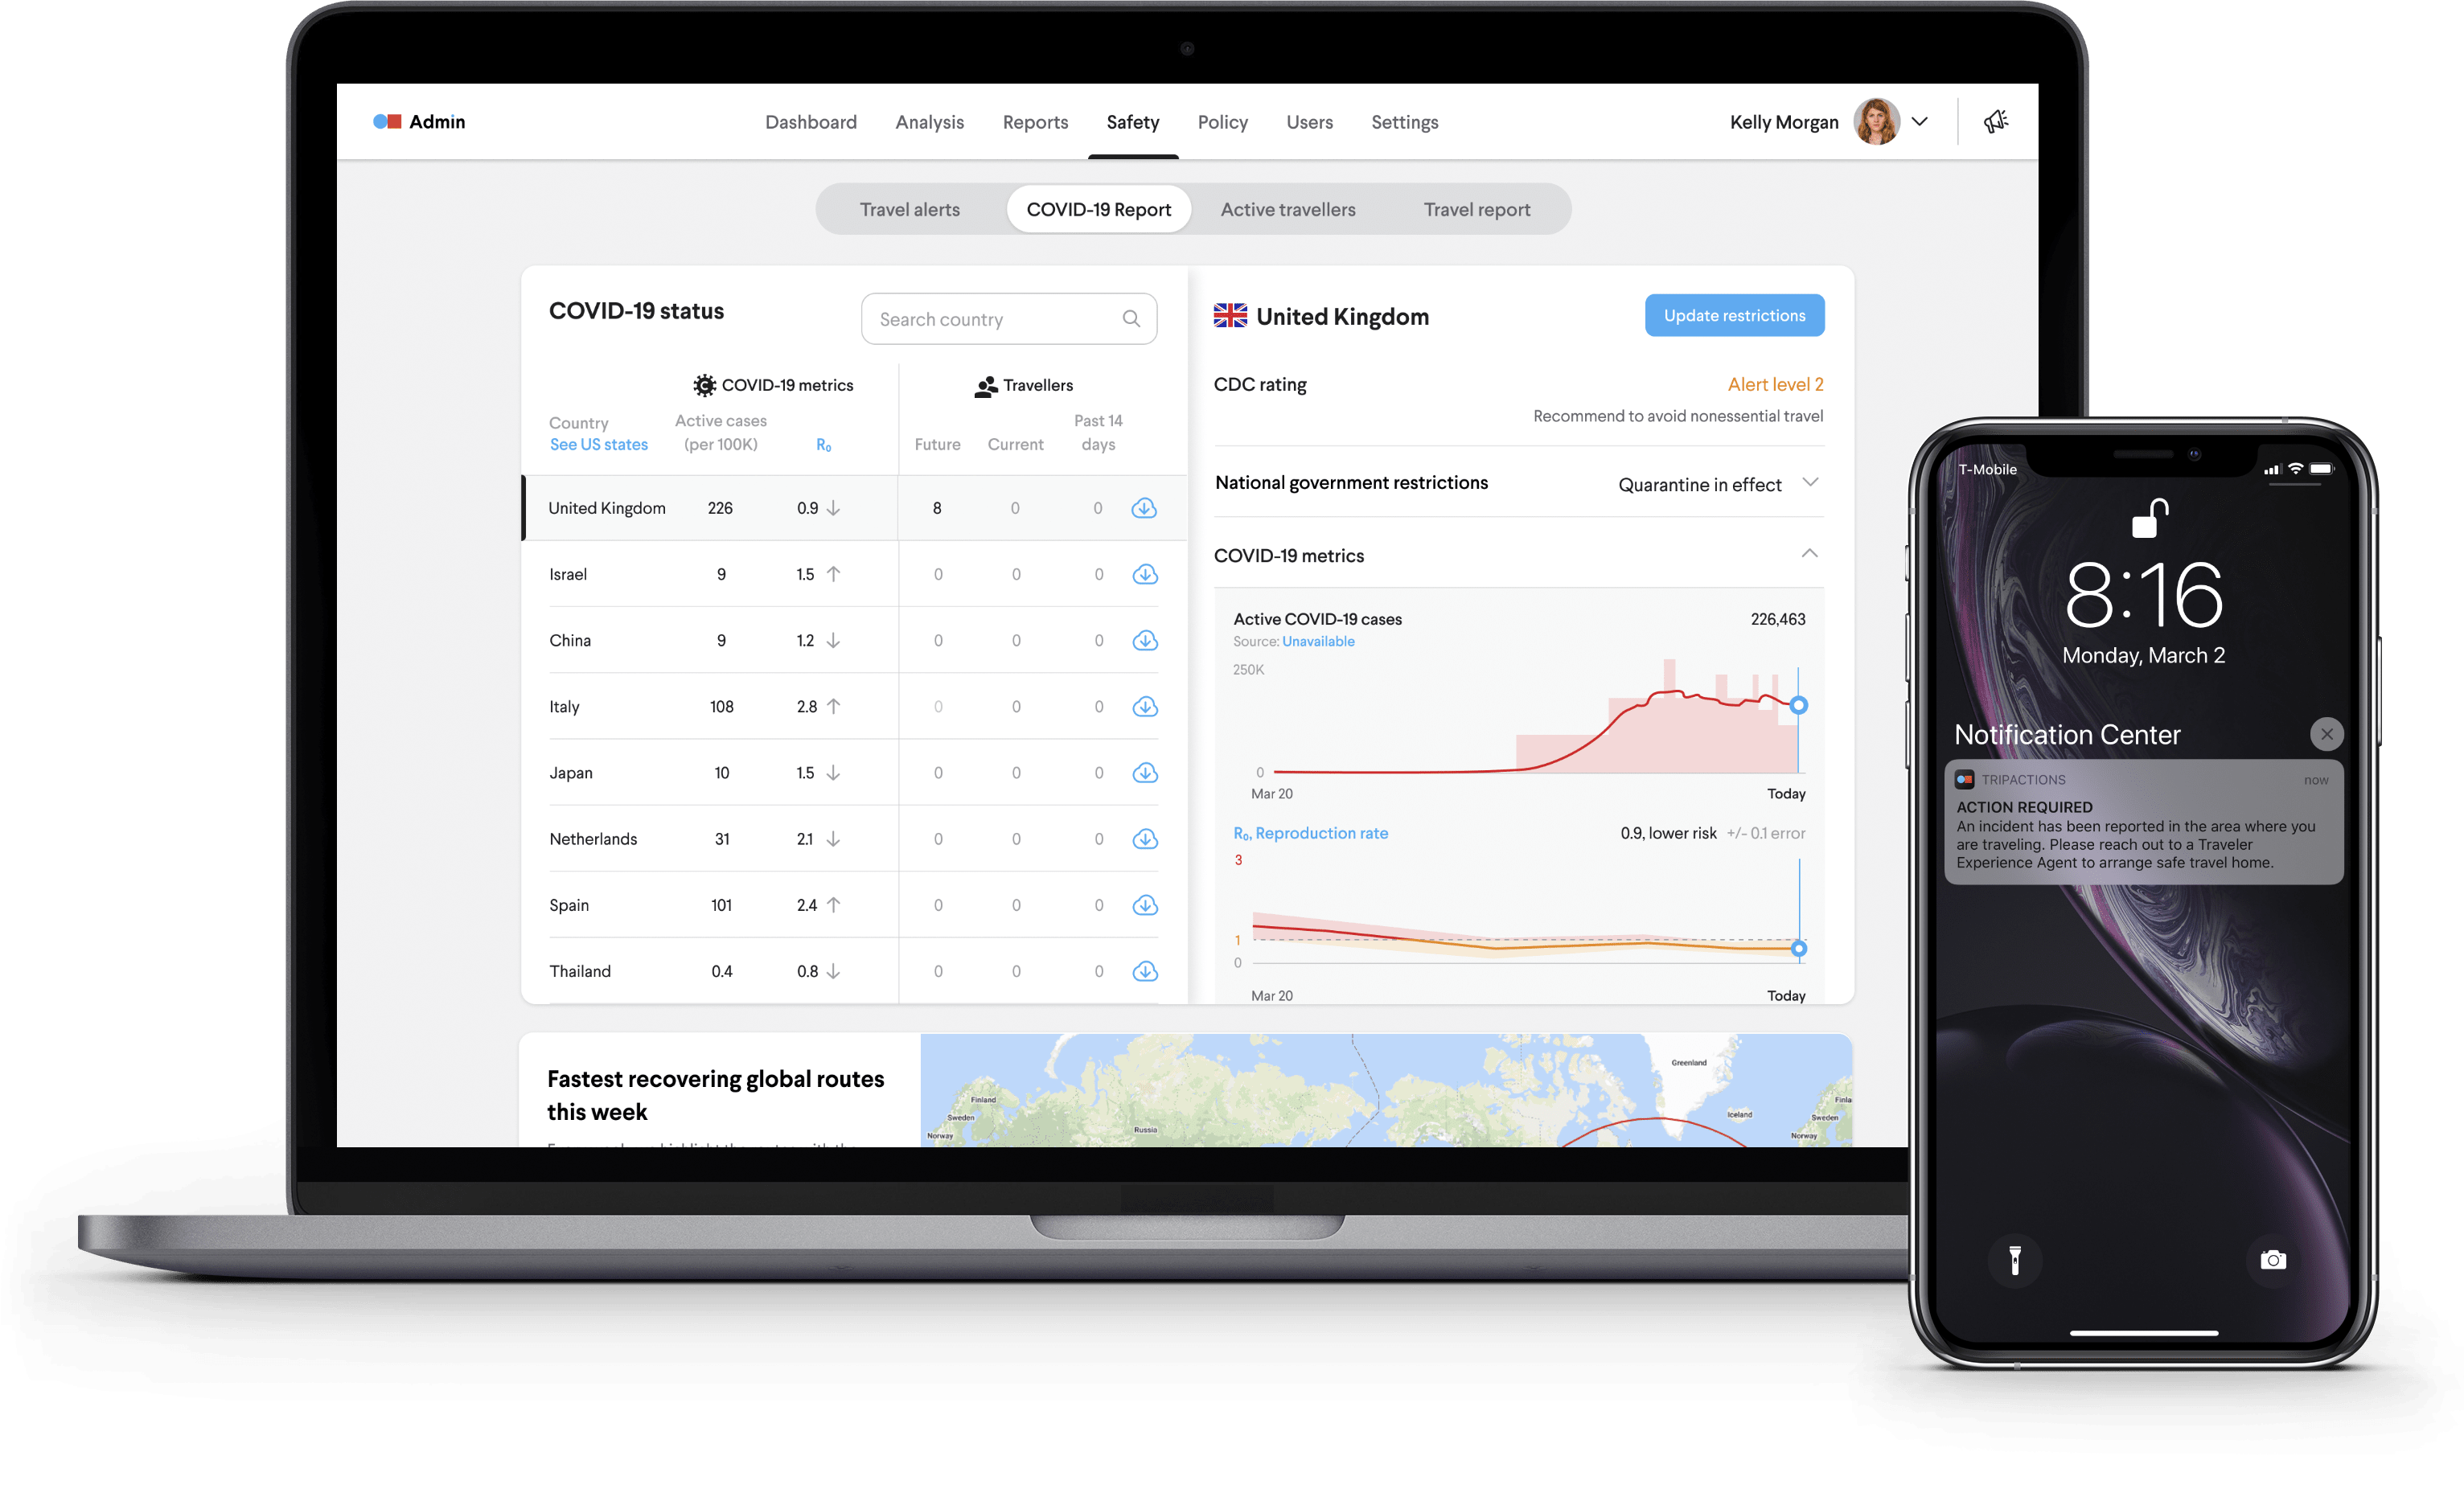 Travel alert banner on desktop and mobile app